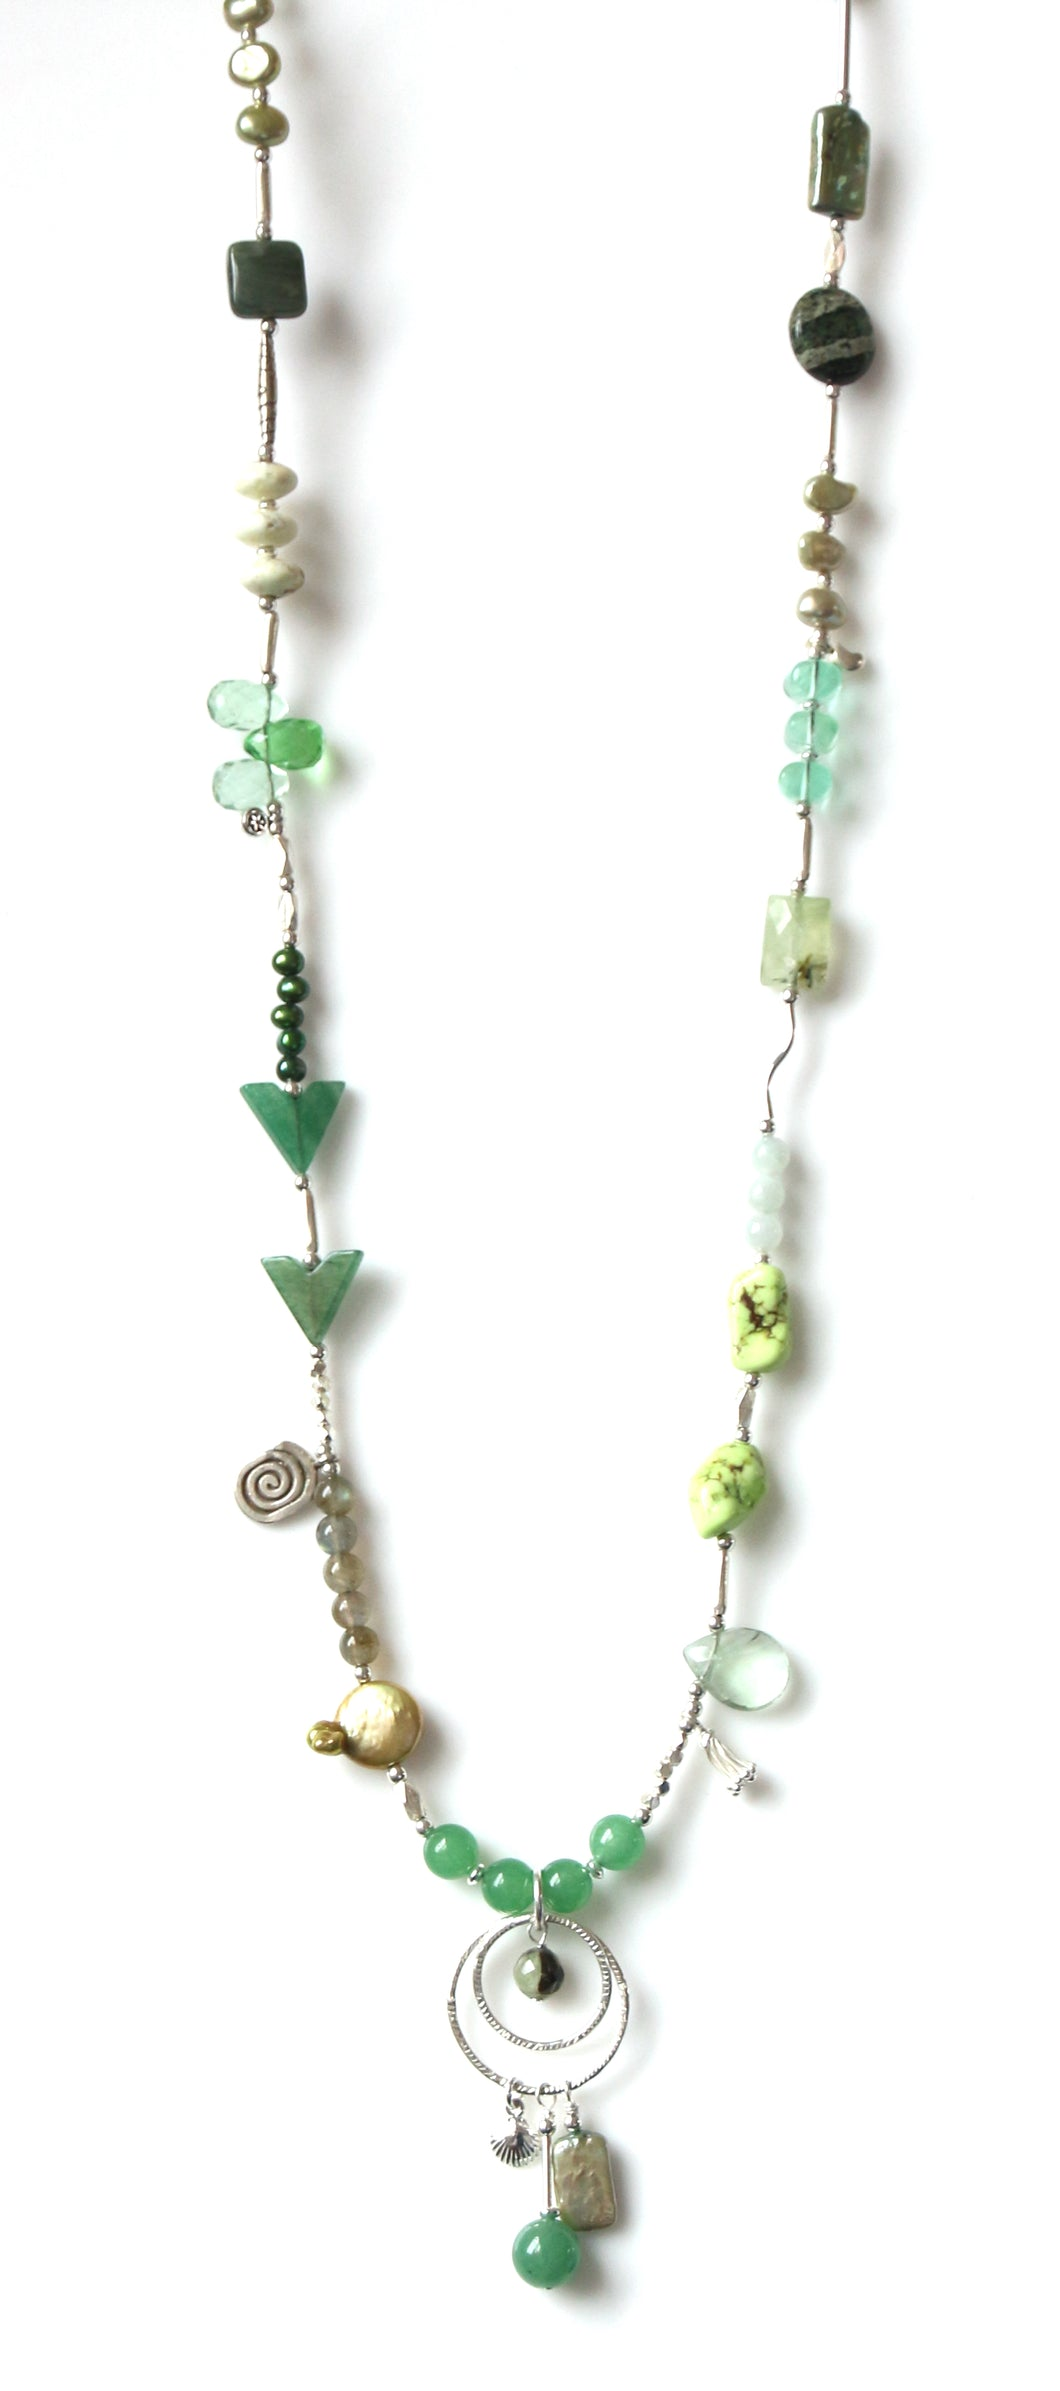 Australian Green Necklace with Pearls Aventurine Fluorite and Sterling Silver